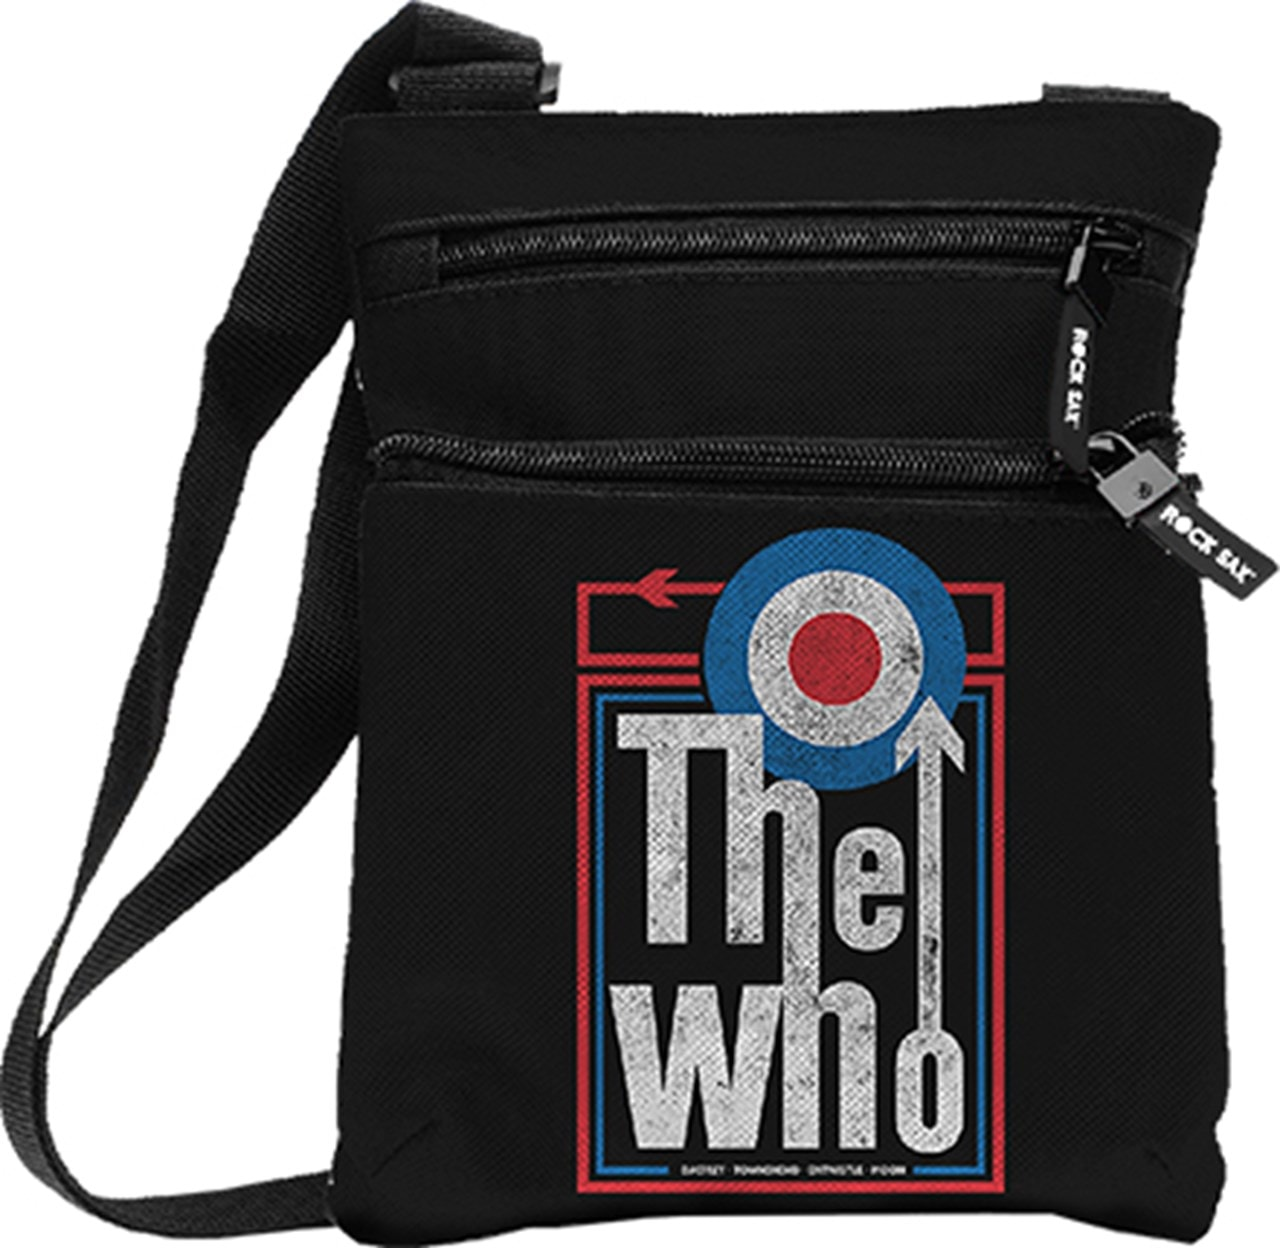 The Who: Target Body Bag - 1